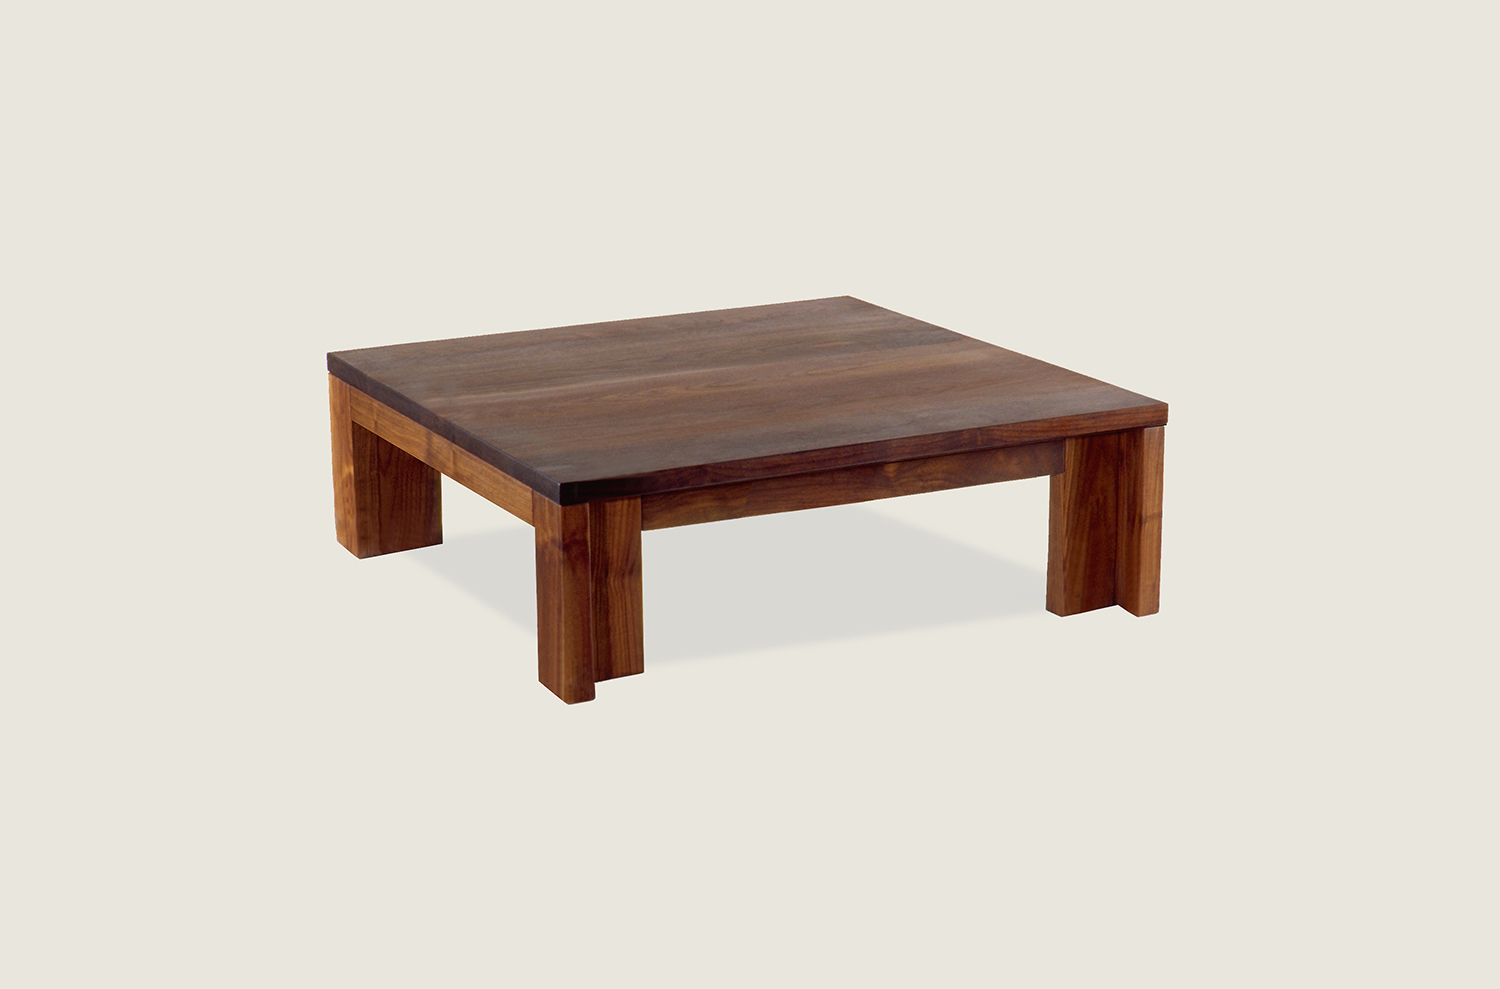 Insight Coffee Table in solid walnut - Speke Klein